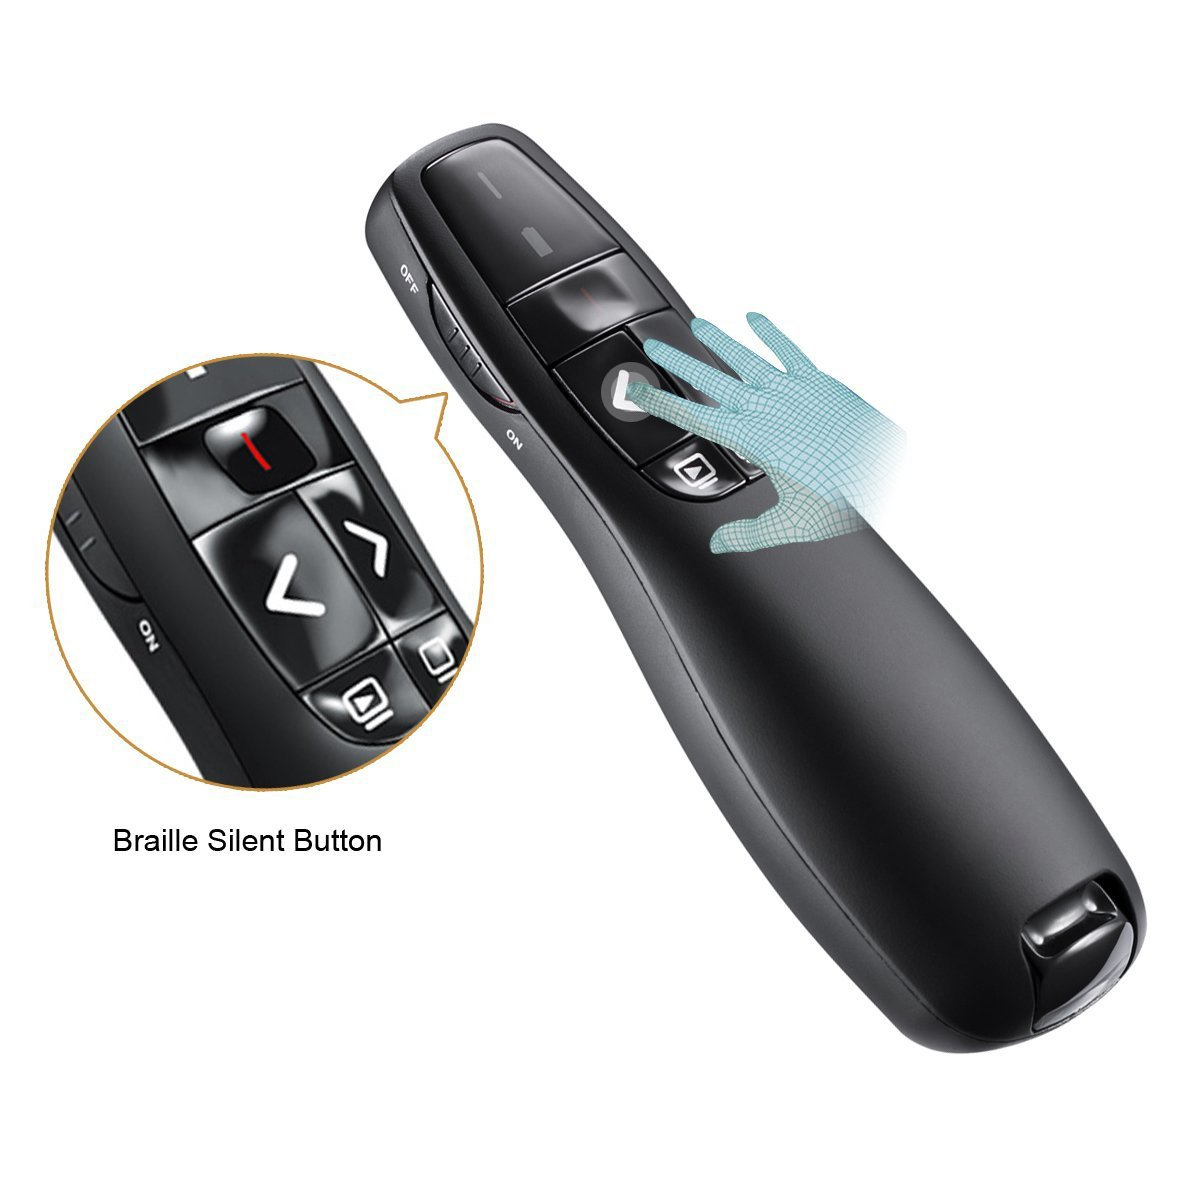 Wireless Presenter with Laser Pointer, 2.4GHZ Support Topic Speech and Super URL, Powerpoint Presentation Remotes R400-Bollaer, USB Control for Teaching and Meeting by BOLLAER (Image #4)